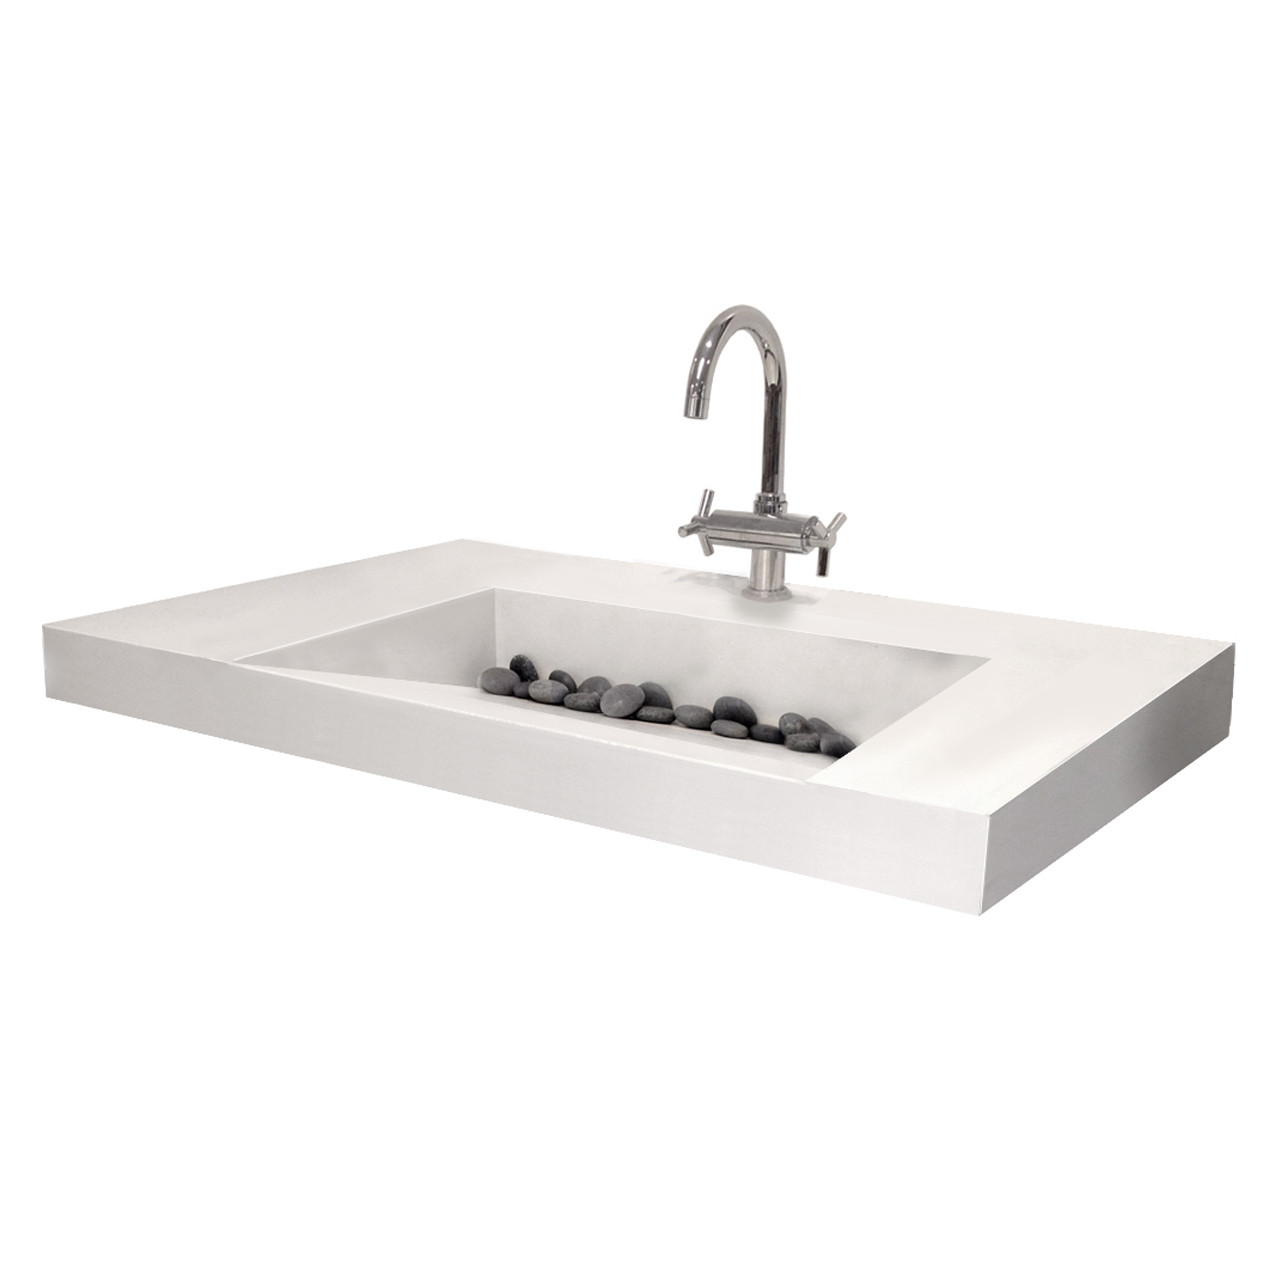 Floating Ada Compliant Bathroom Sink Trueform Concrete